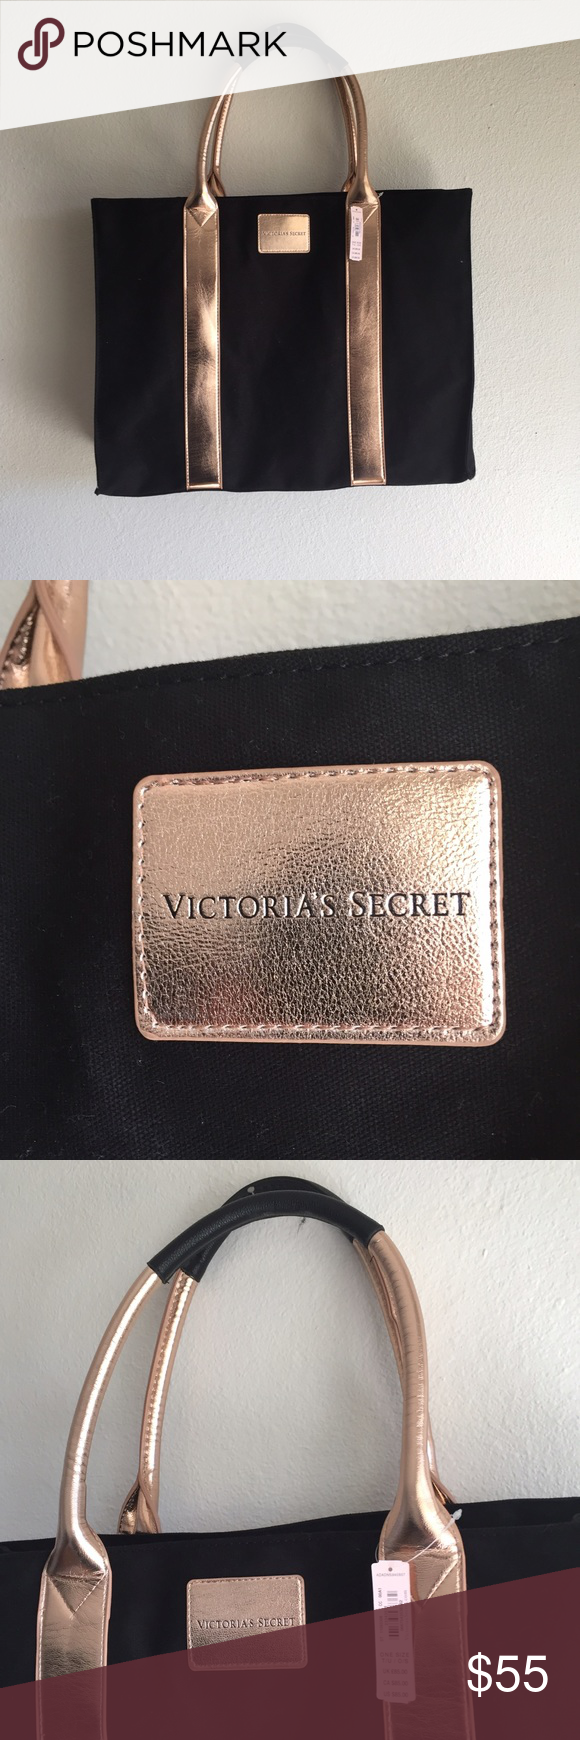 LAST CHANCE VICTORIA SECRET Bag🌸 New With Tags. Beautiful large bag. Victoria's Secret Bags